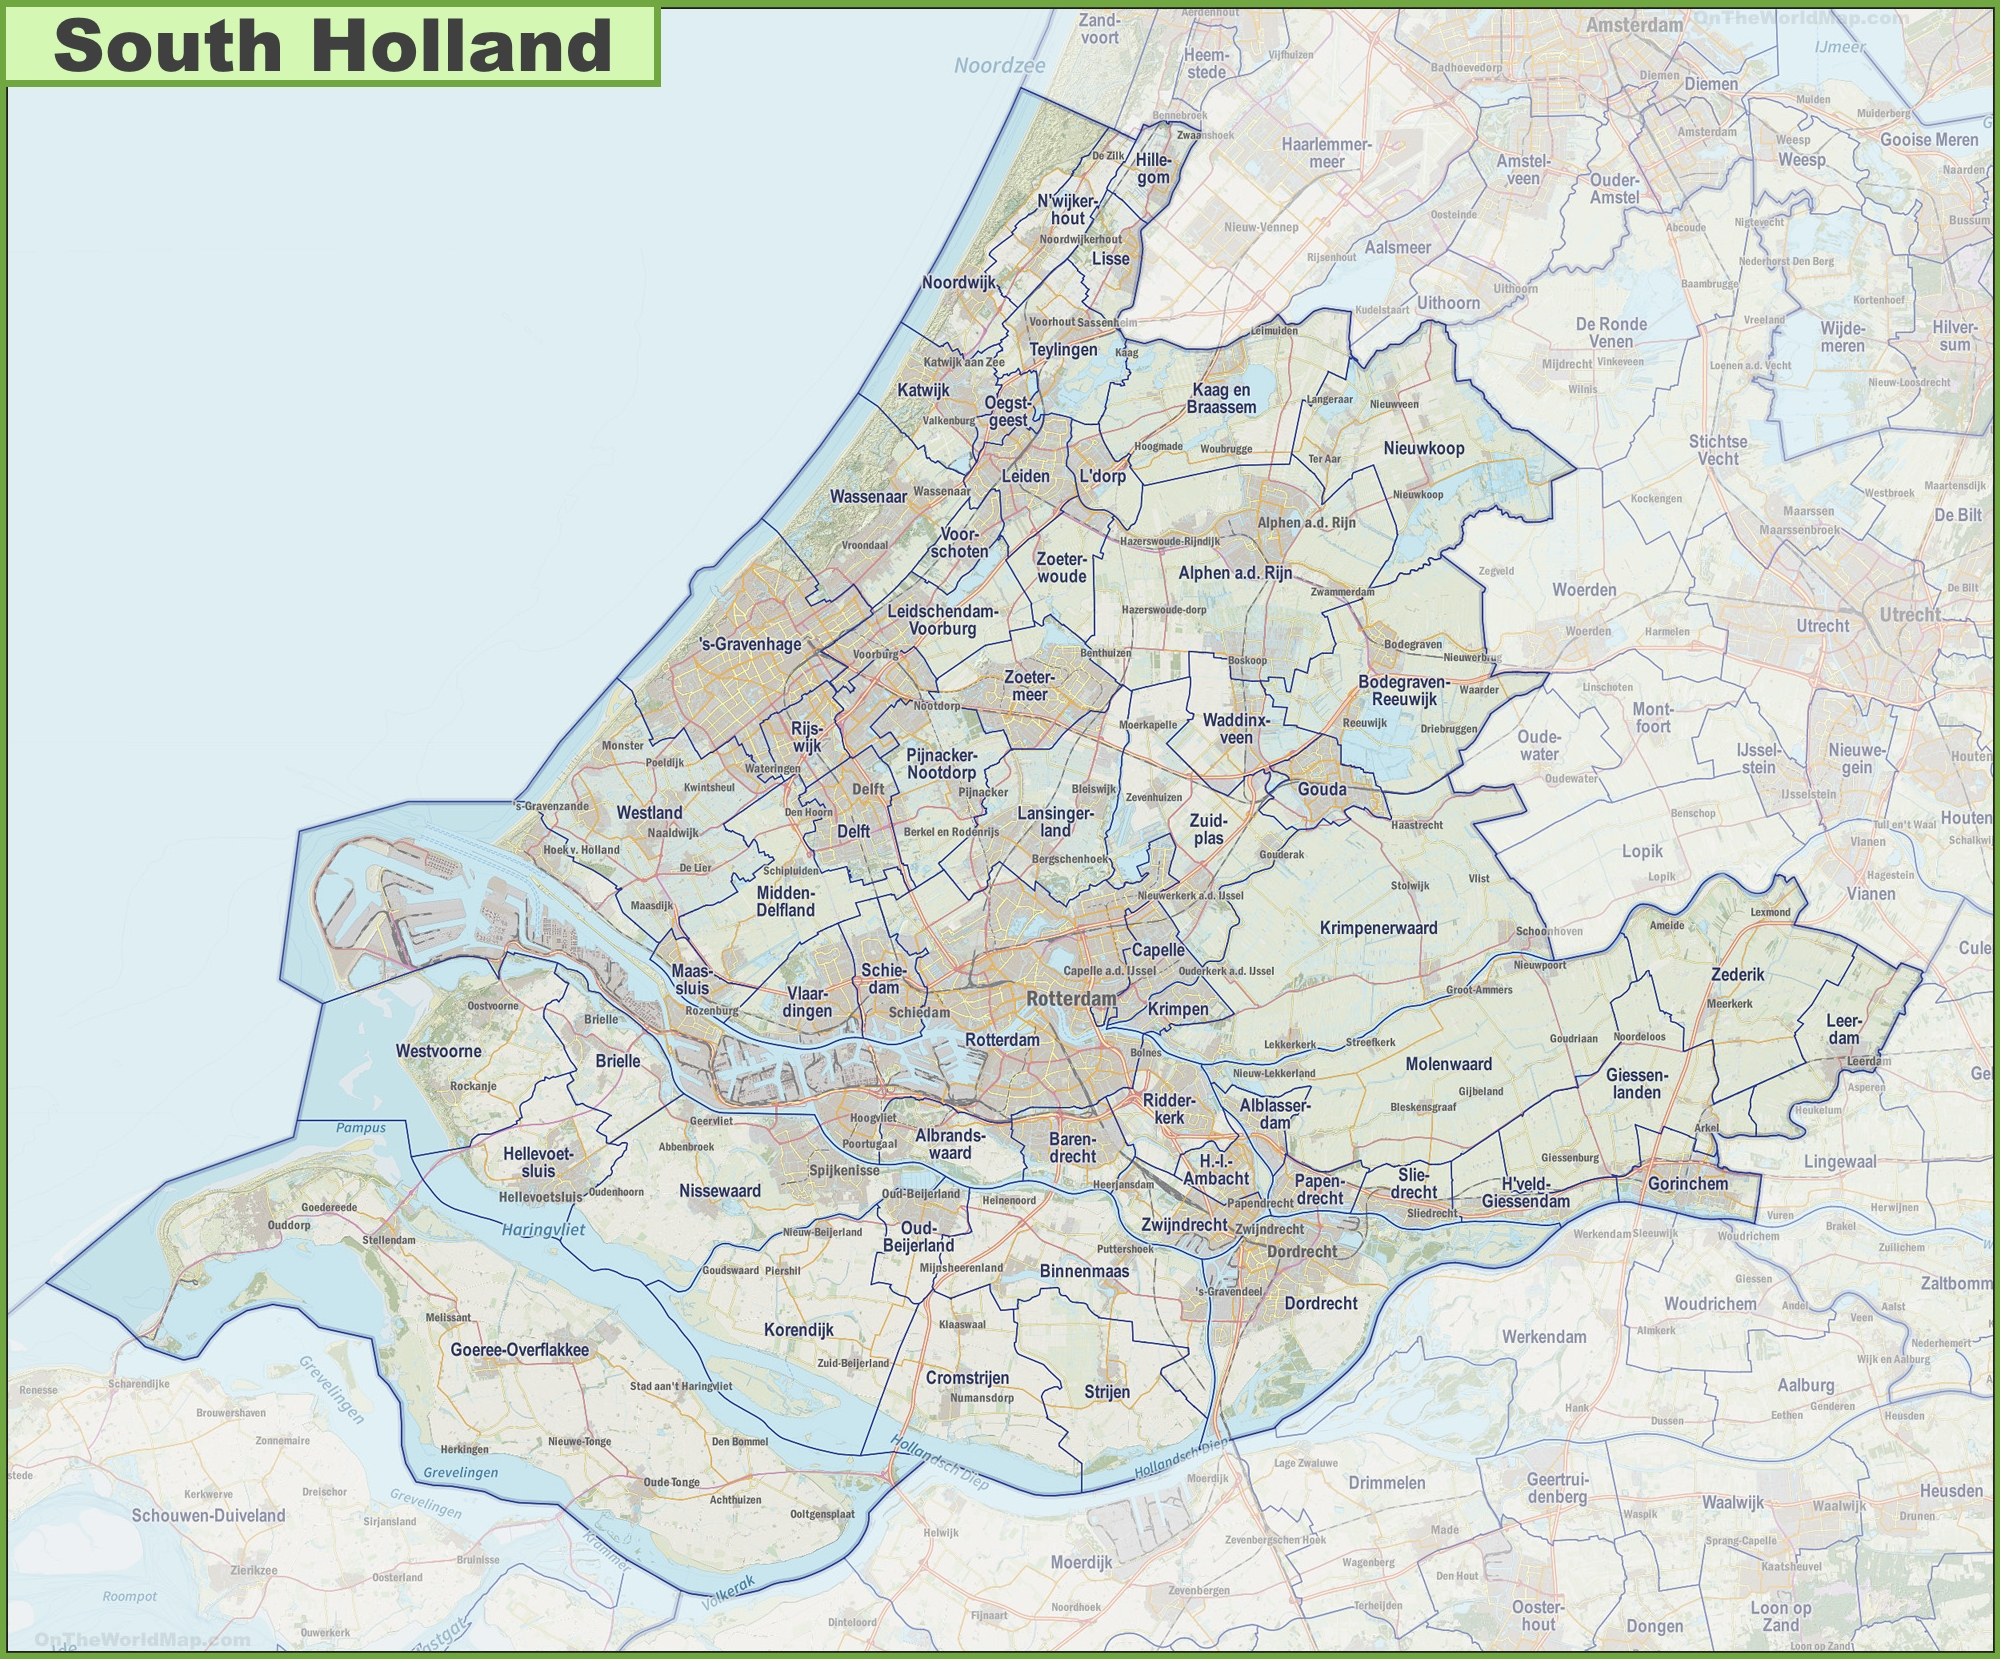 Map of South Holland with cities and towns